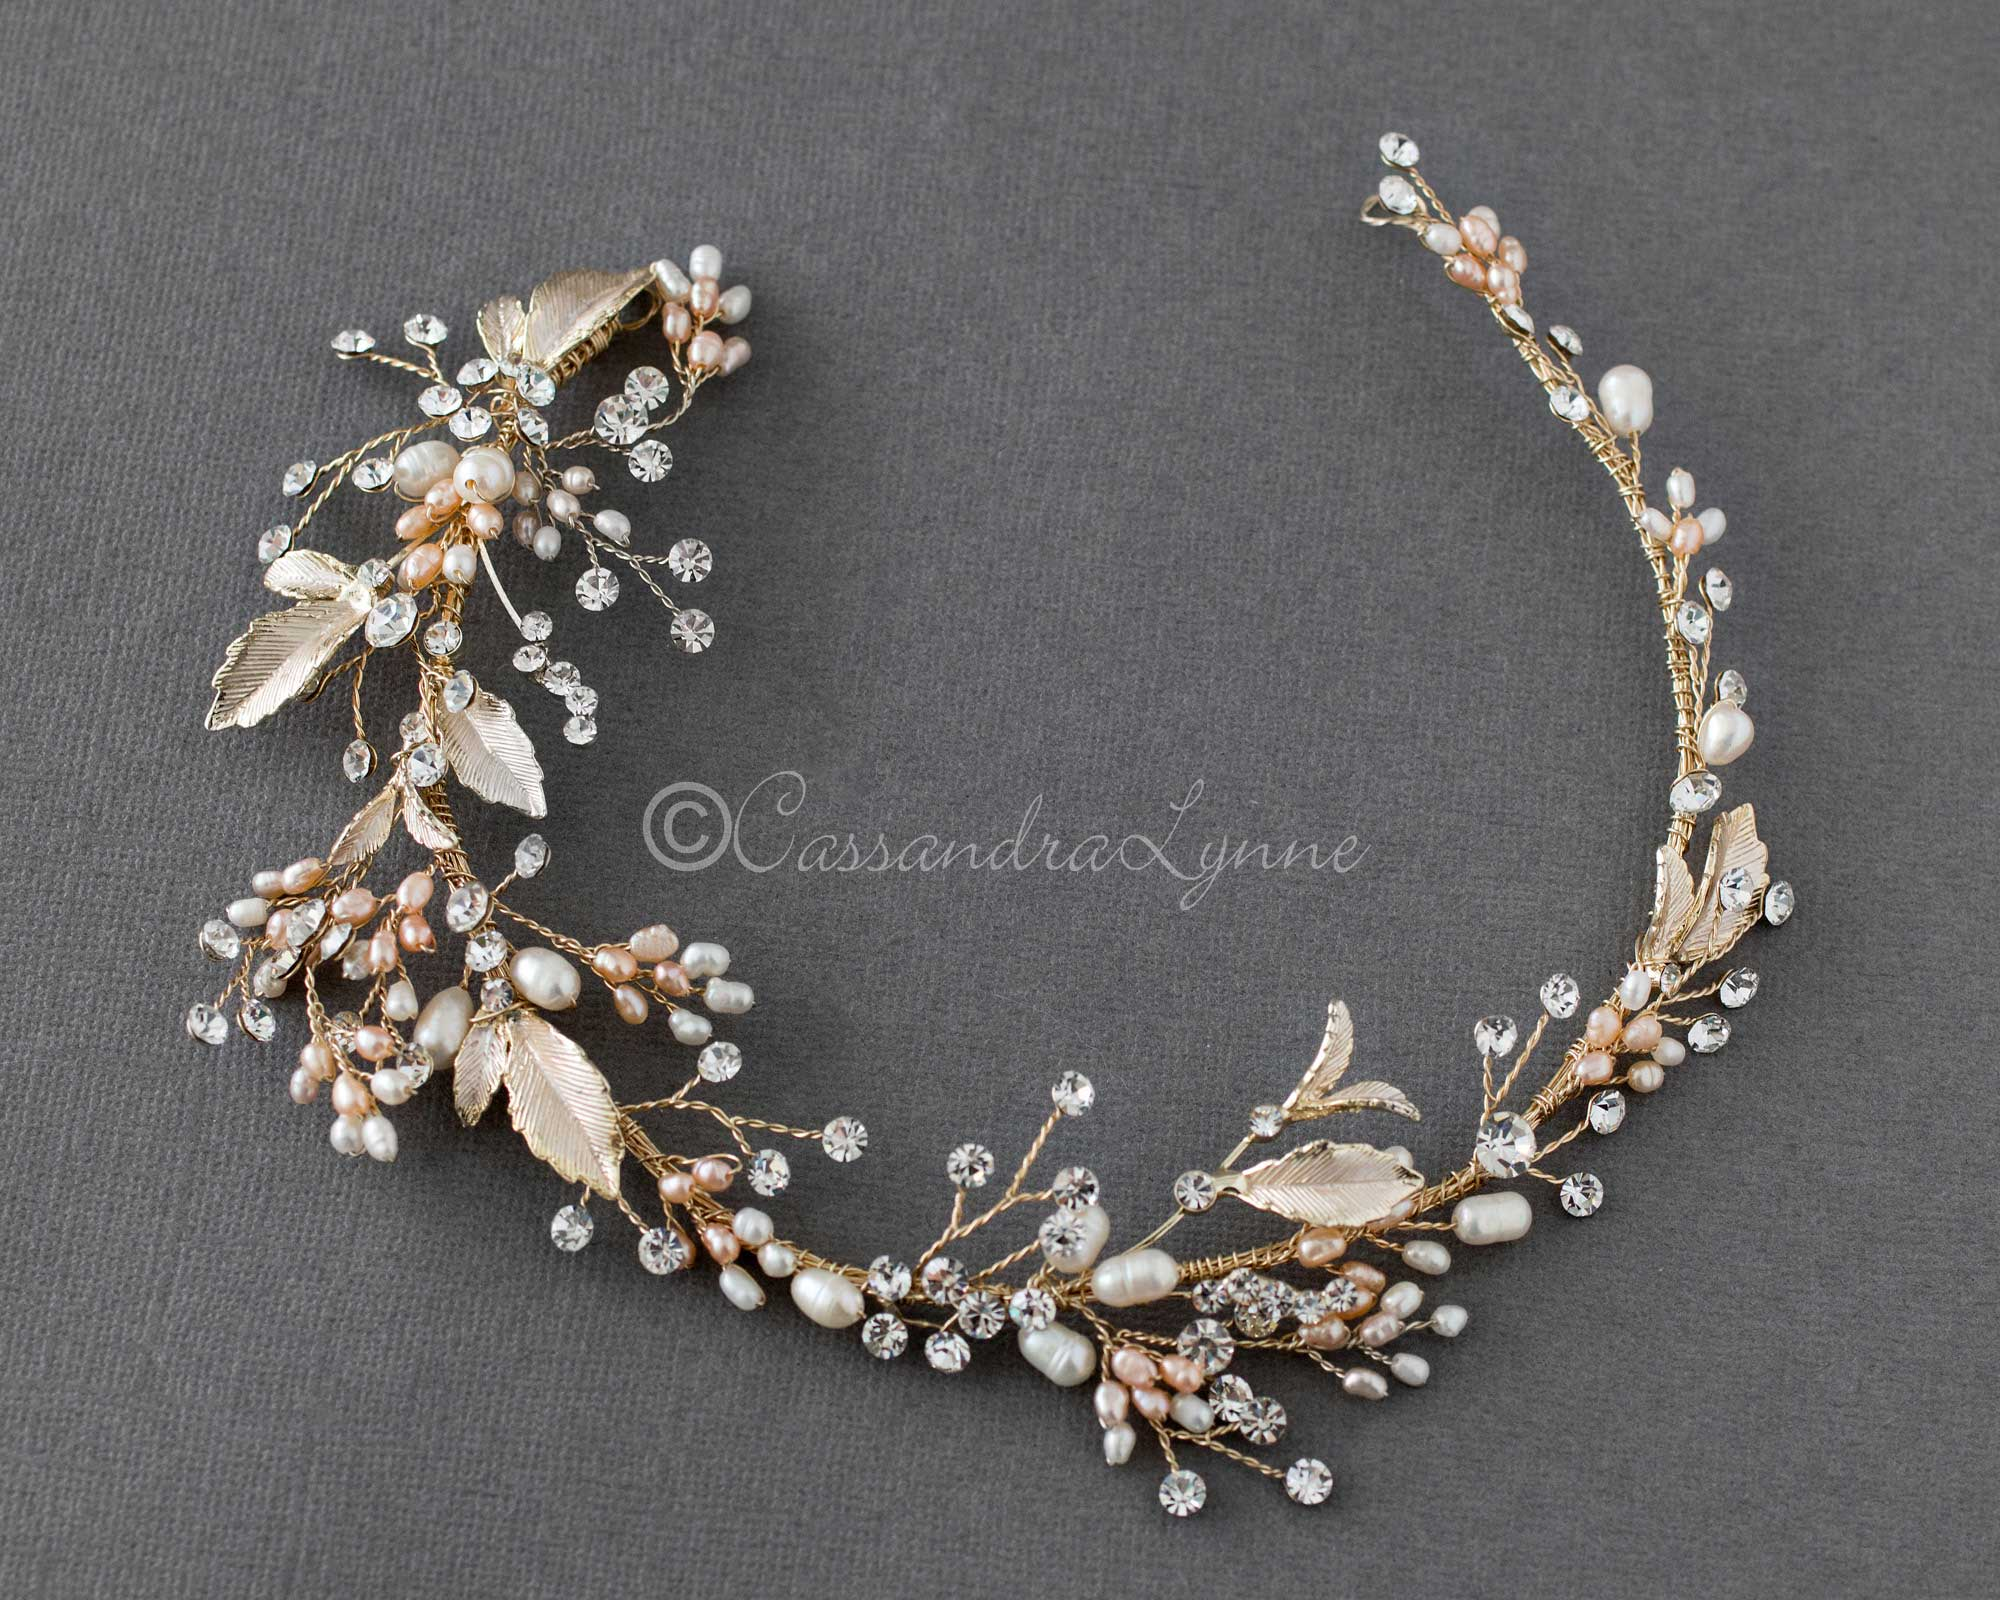 rum pink pearls wedding headband+